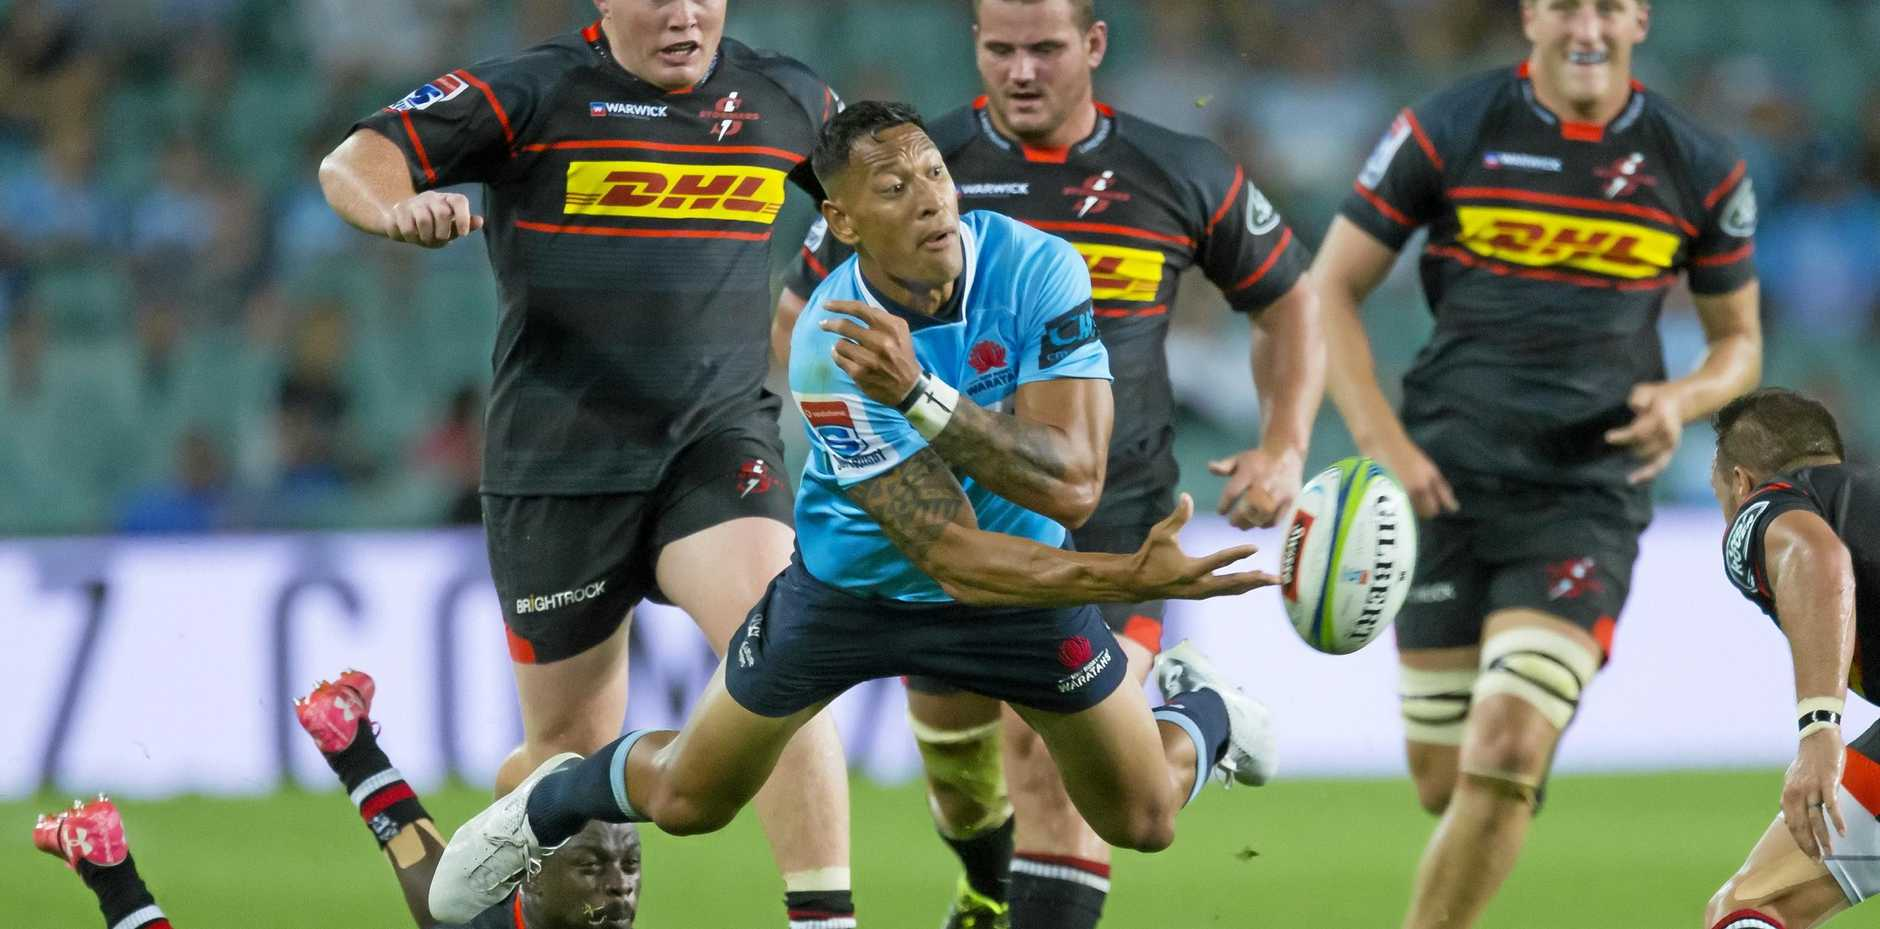 Star Waratah and Wallaby Israel Folau, pictured offloading against the South Africa Stormers, has caused a storm of controversy by saying gays are destined for hell unless they repent.